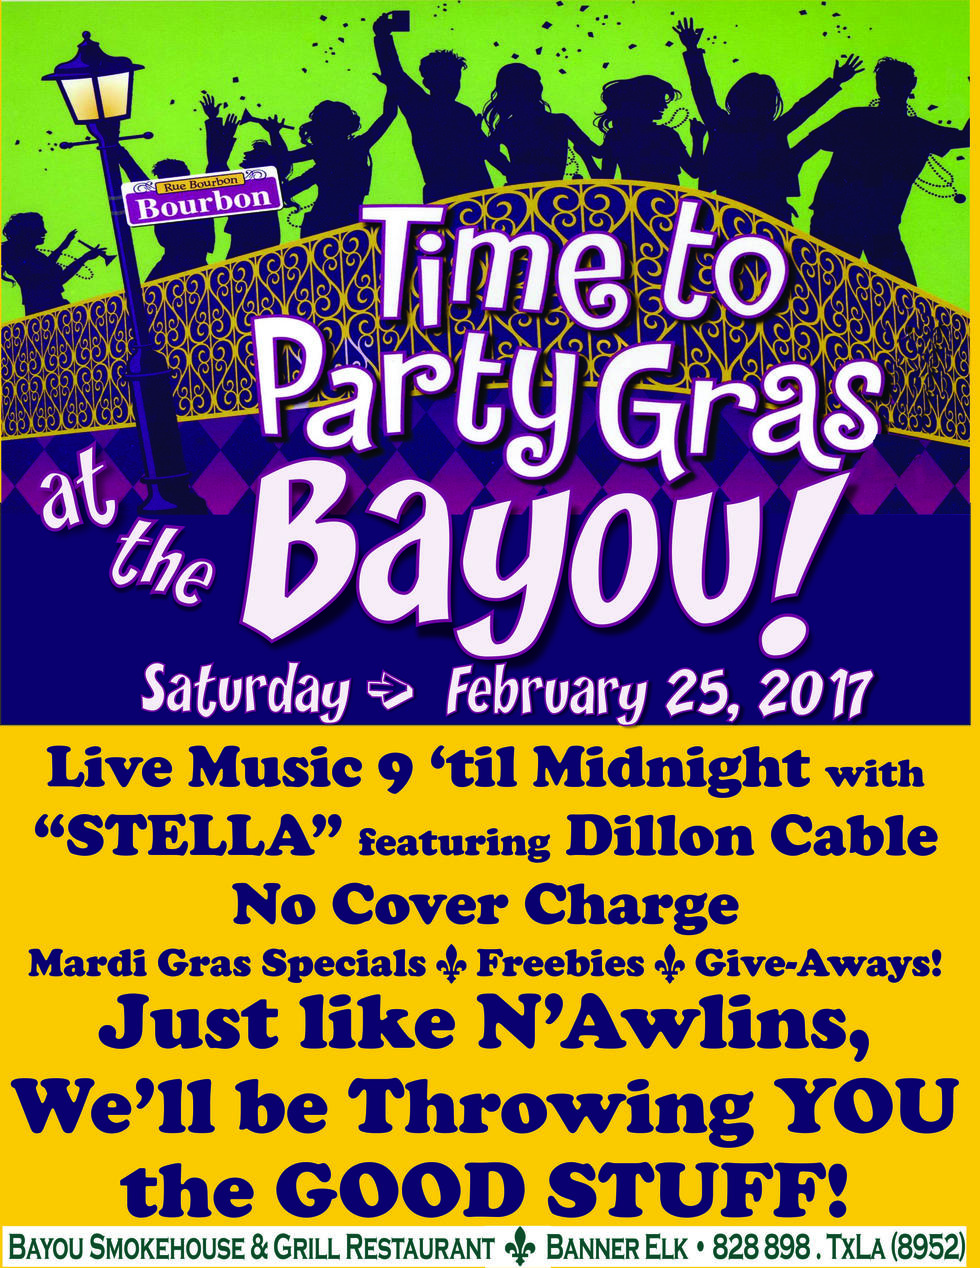 Kp9evlngqjulz3deiu9s mardi gras party 2017 (ds)